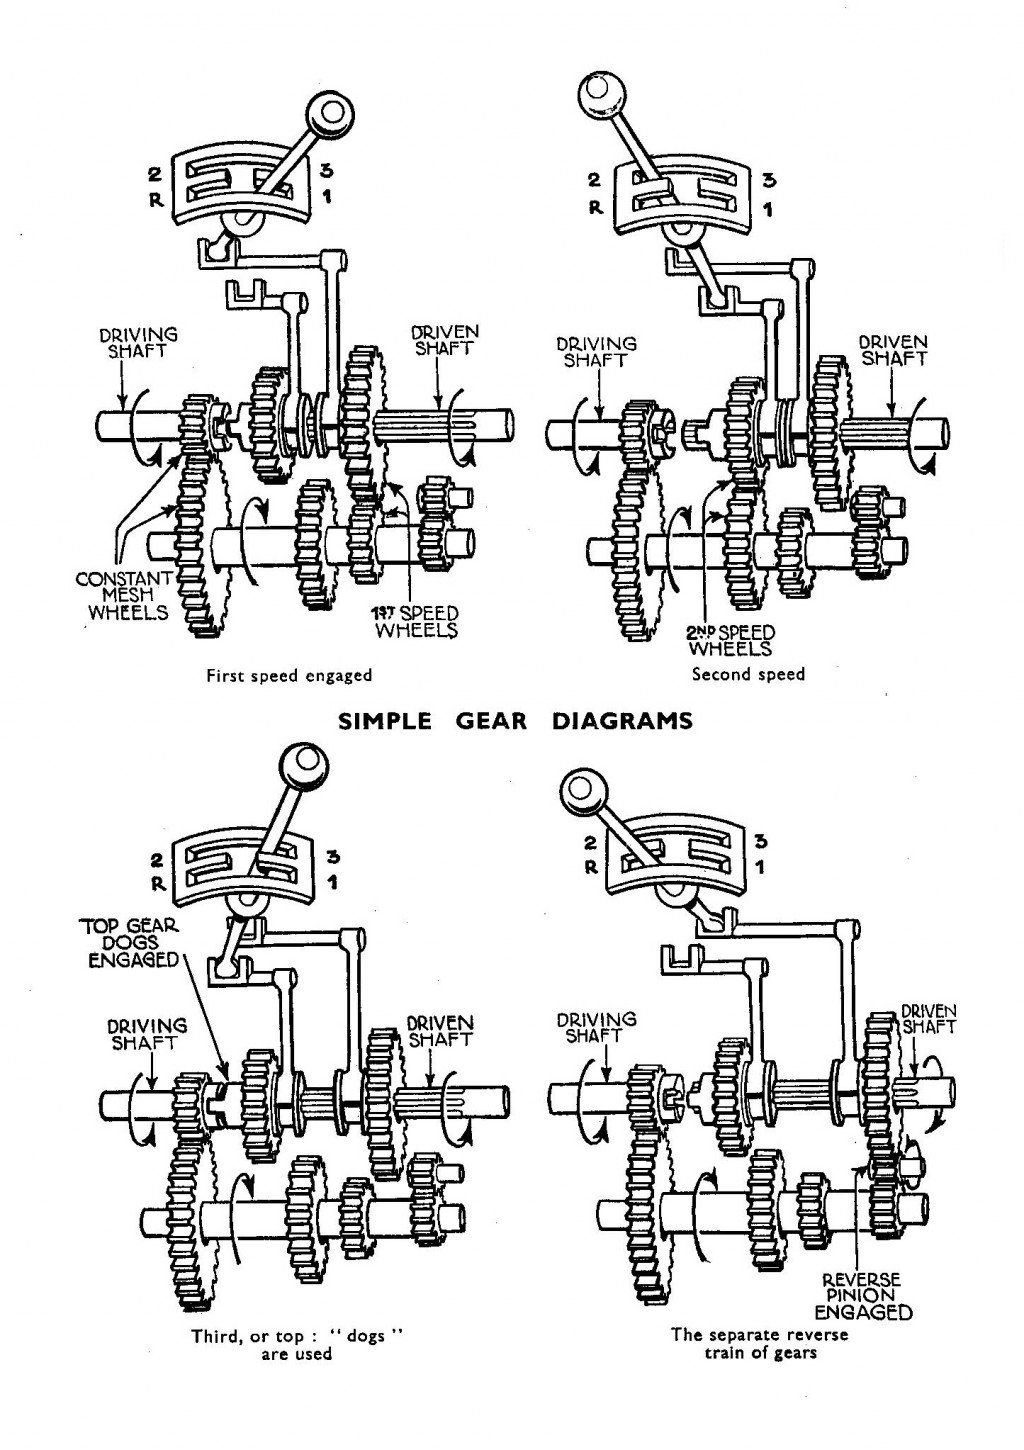 There are a few types of transmission you might find in